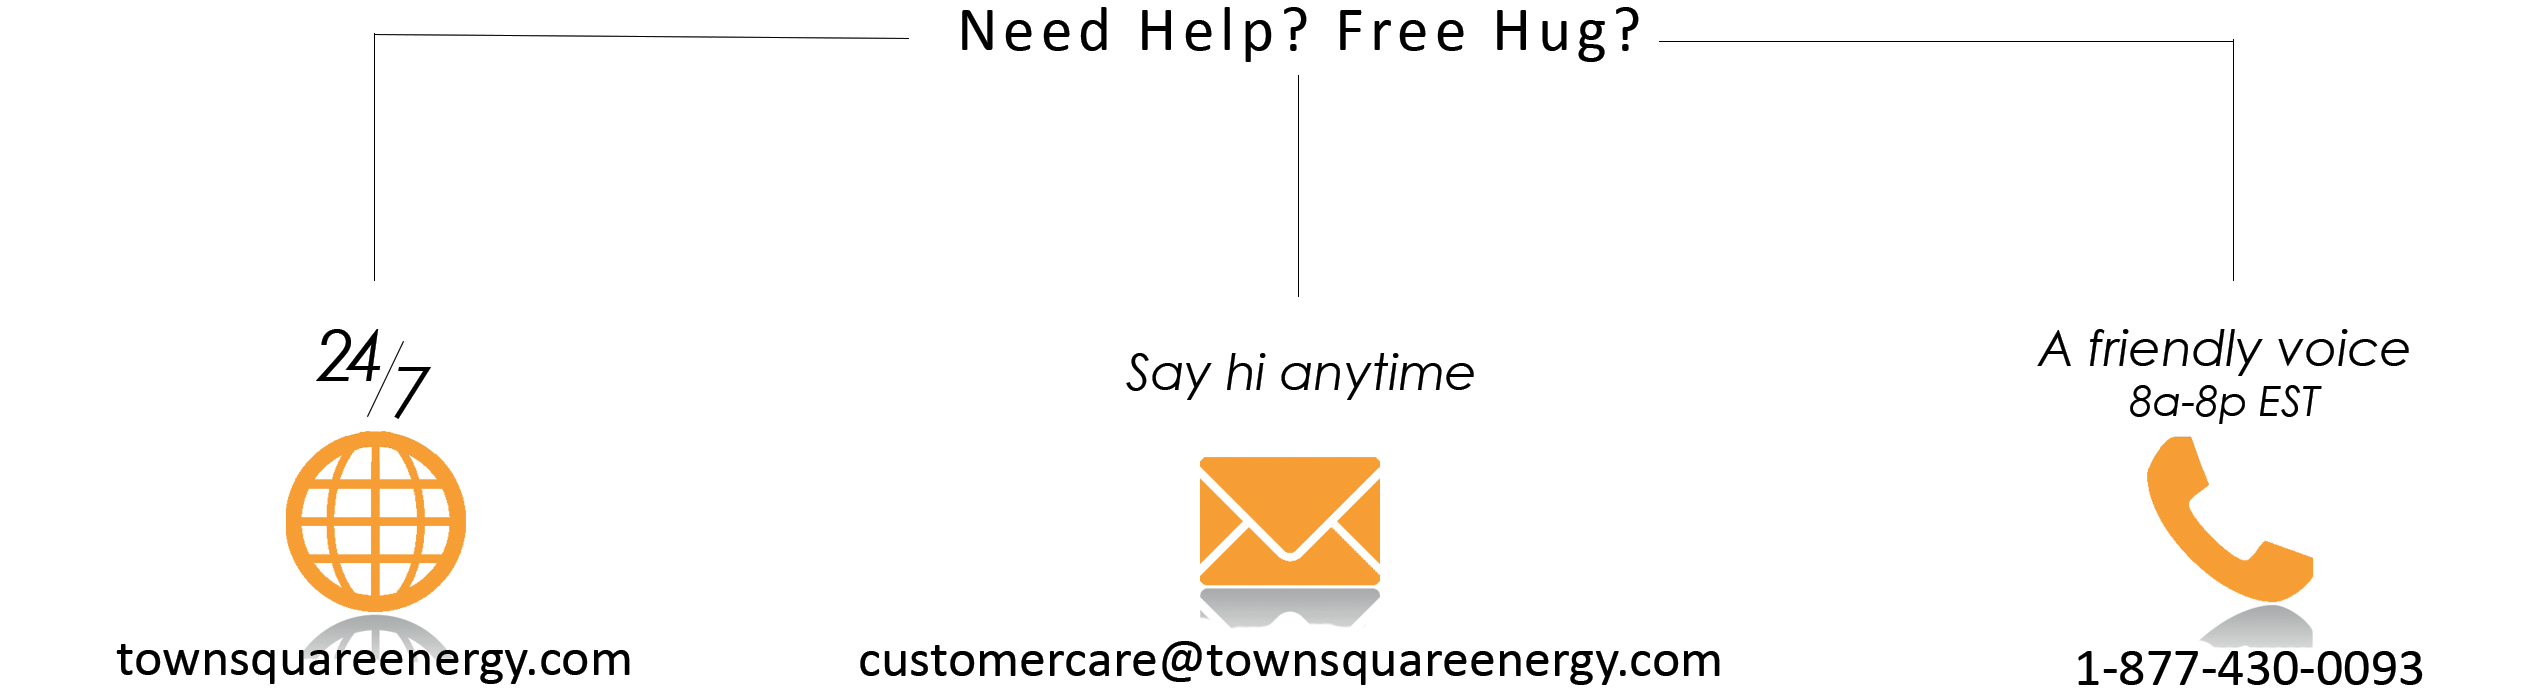 Contact-Graphic_Free-Hug